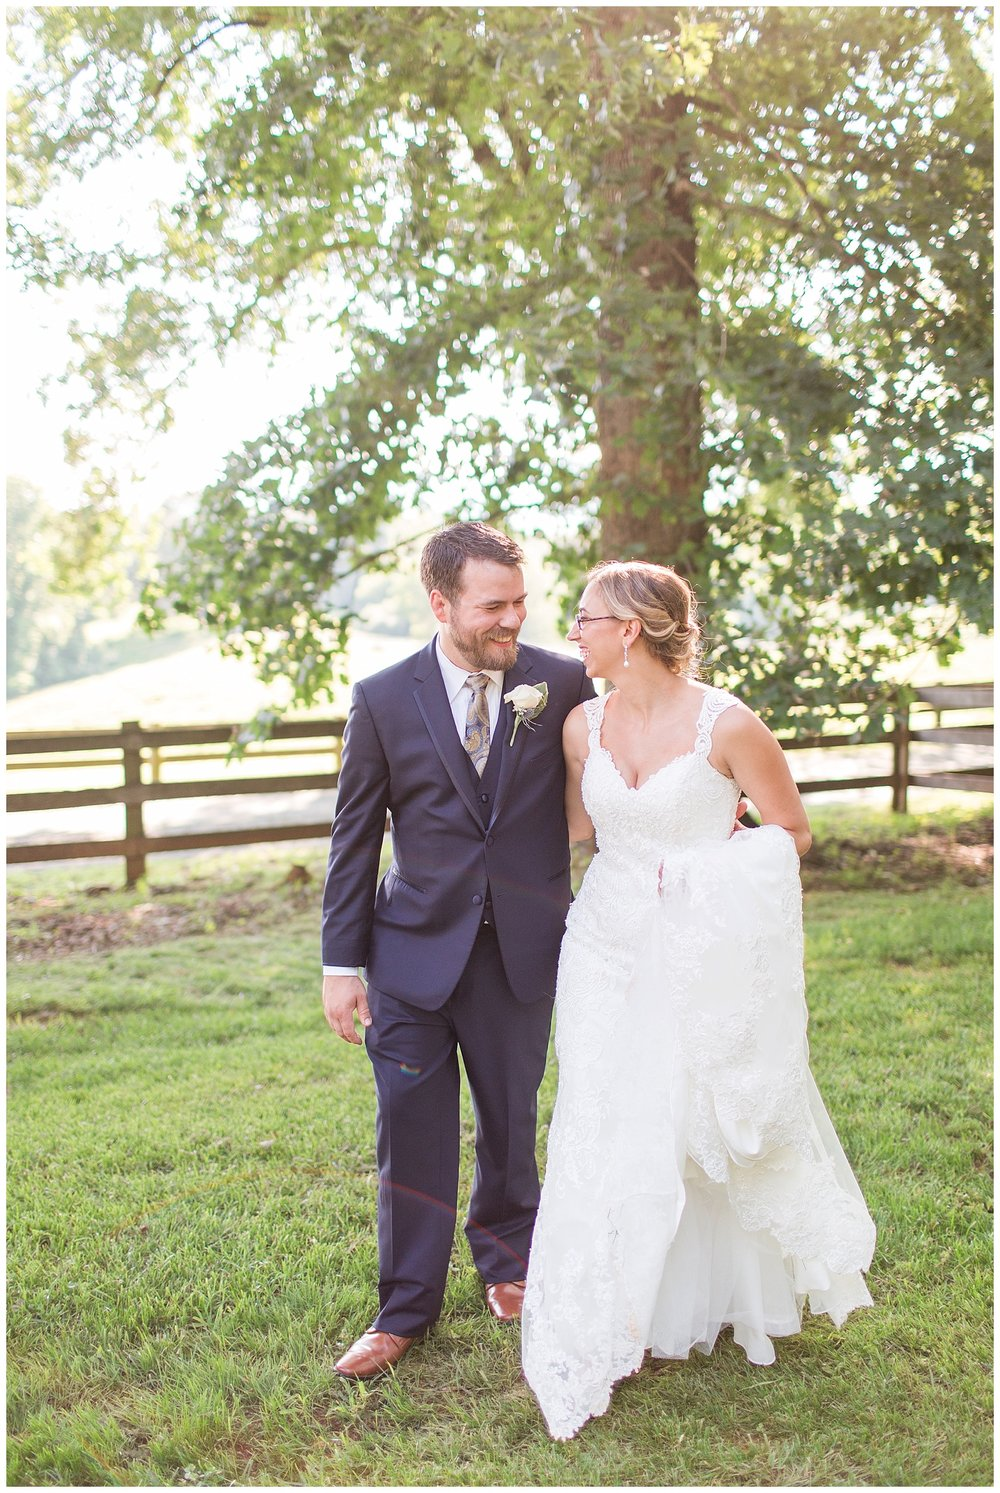 Knight's Gambit Vineyard Wedding in Charlottesville, Virginia || Central VA Winery Wedding Photographer